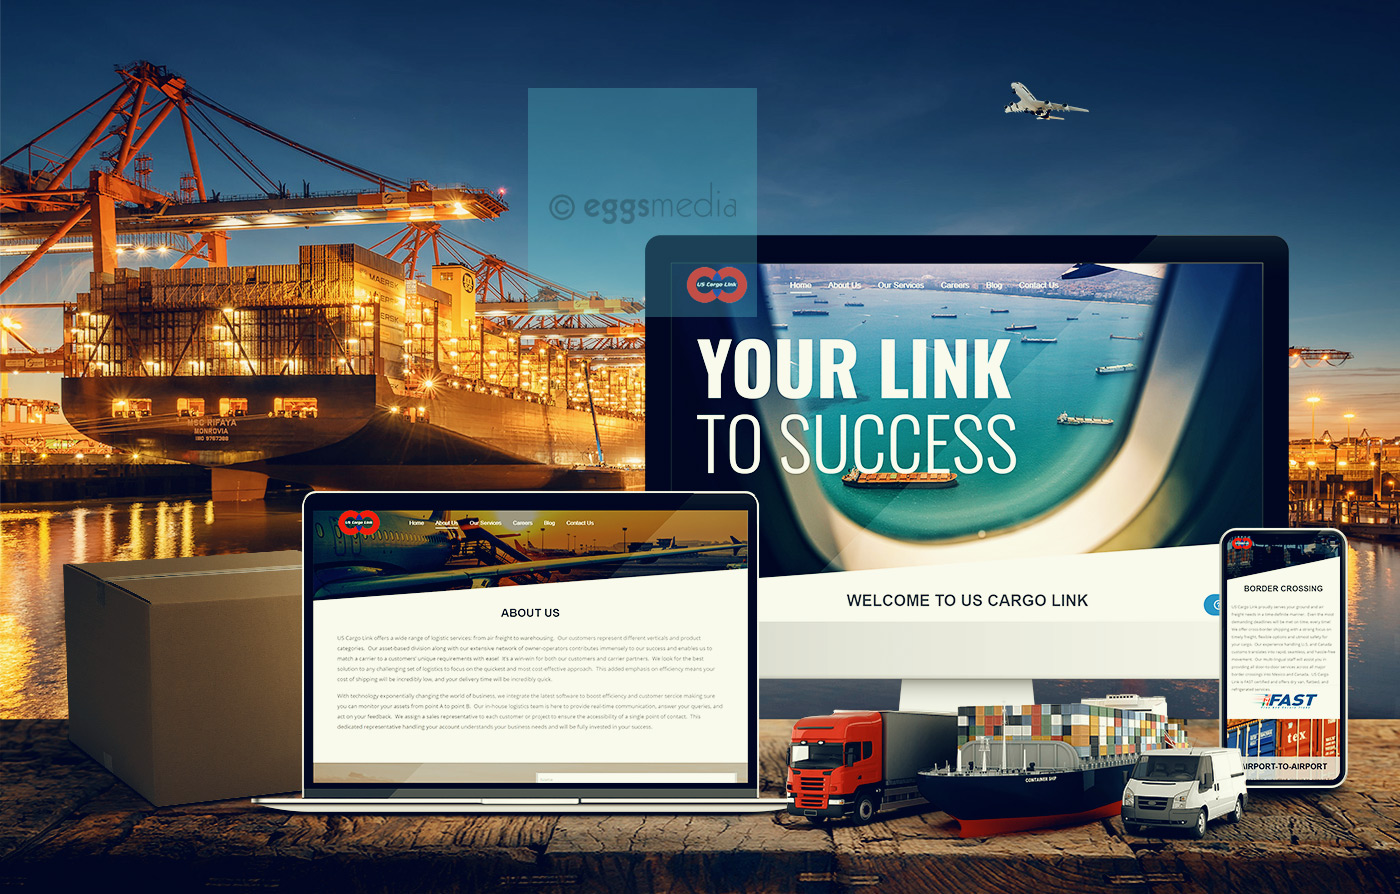 eggs media projects us cargo link